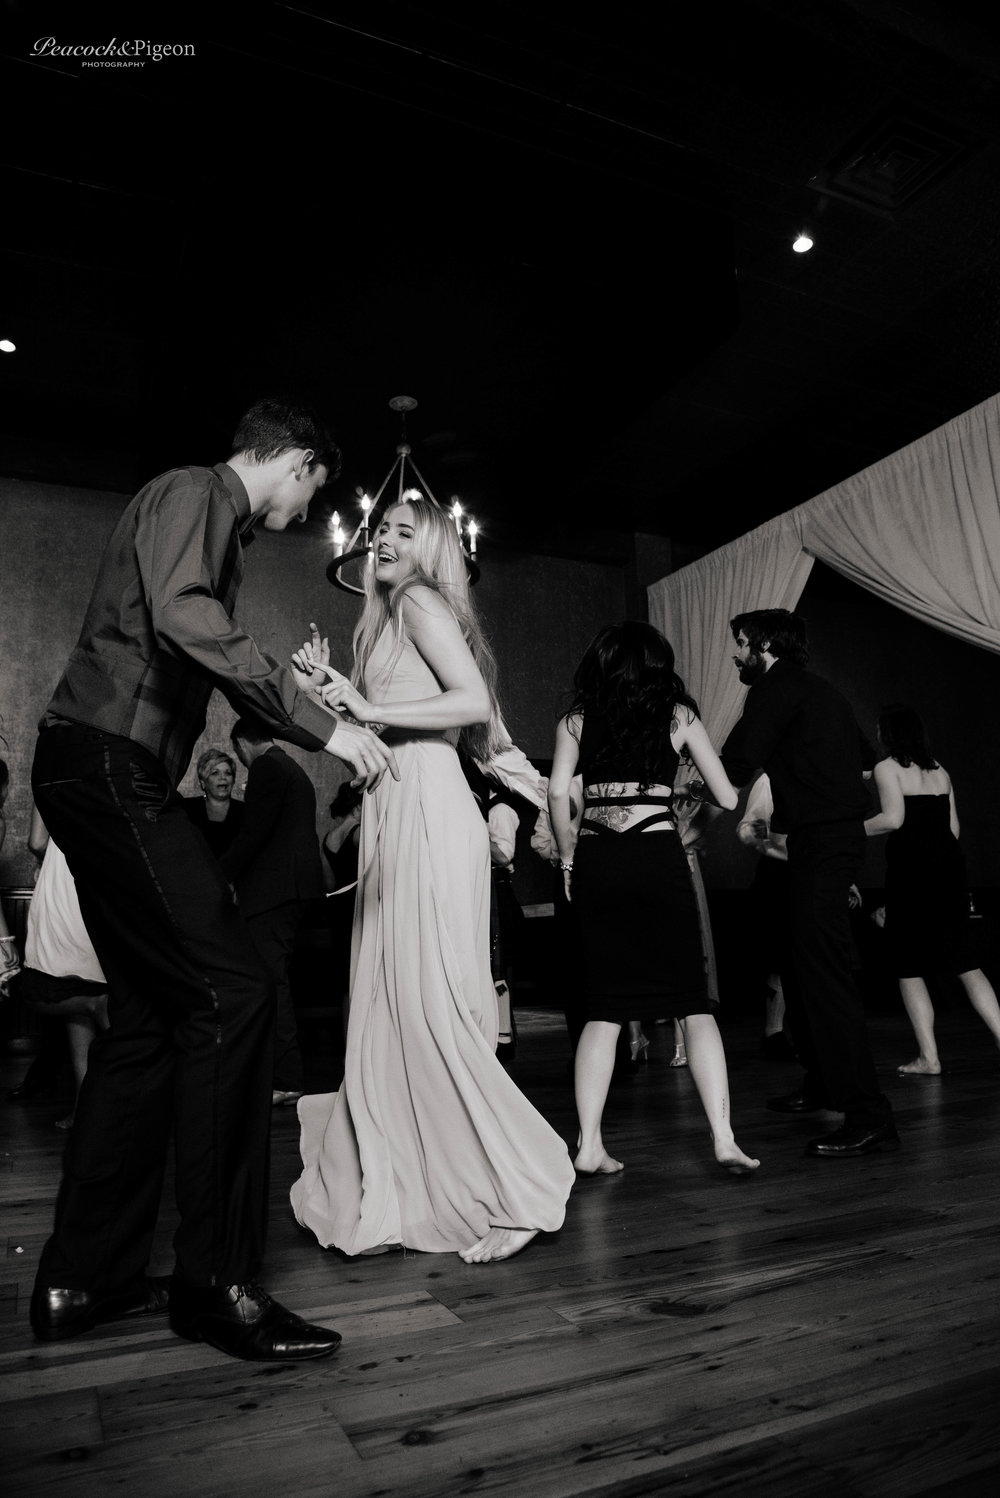 Callum_and_Sara's_Wedding_at_the_Cork_Factory_Hotel_in_Lancaster_Part_Eleven_Dancing_Continued_Black_and_White_Watermarked-47.jpg